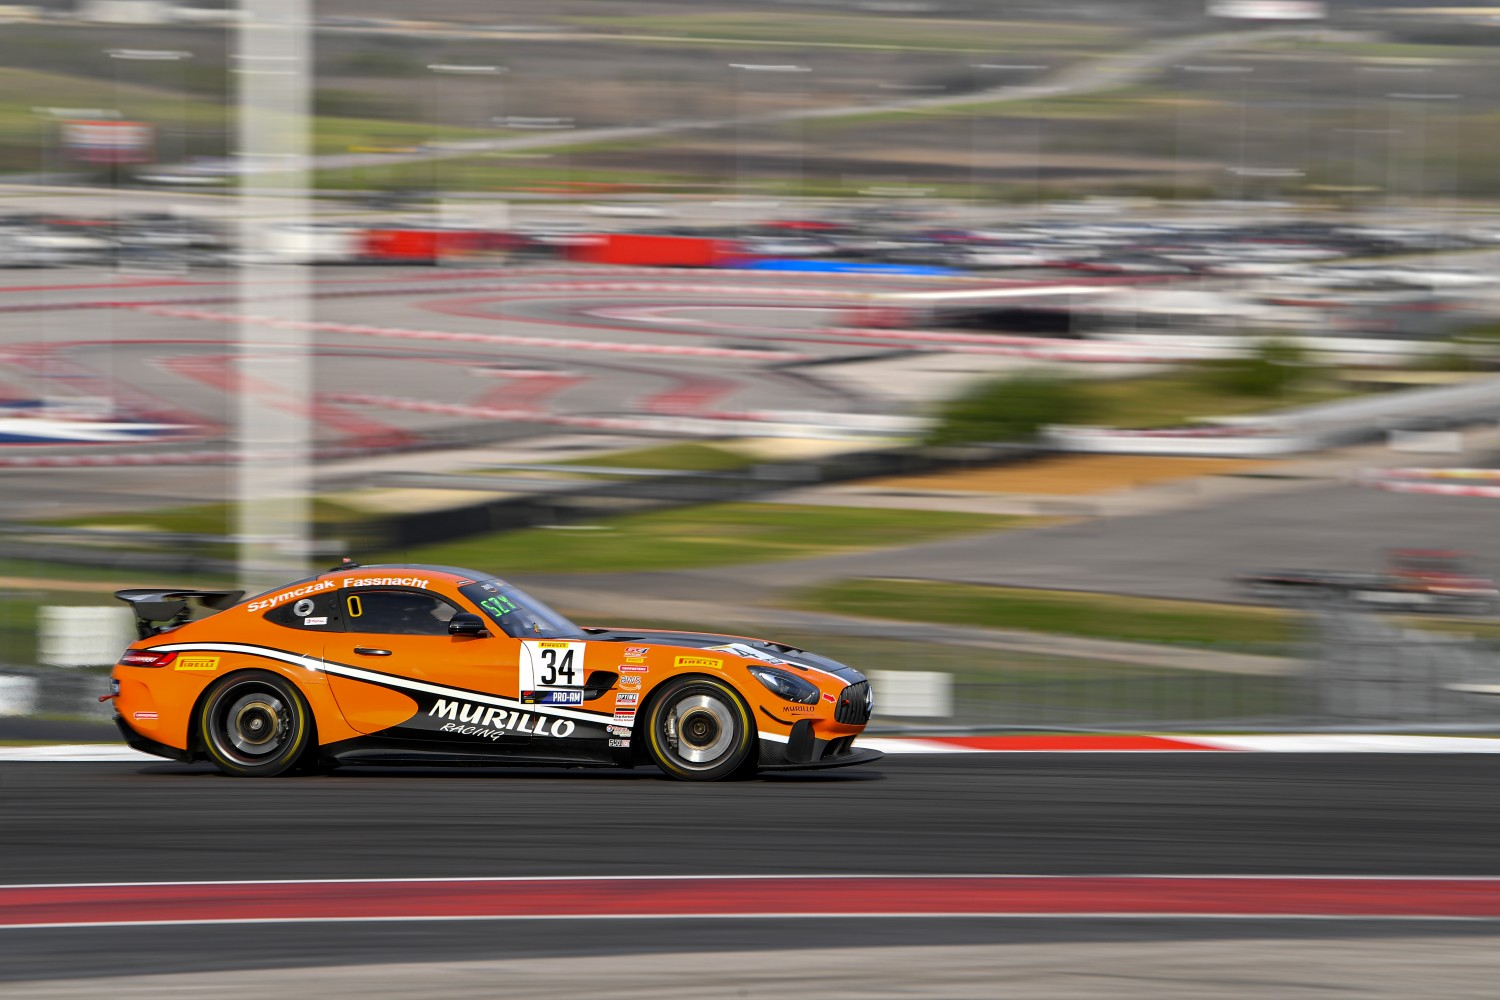 #34 GT4 SprintX, Pro-Am, Murillo Racing, Matt Fassnacht, Christian Szymczak, Mercedes-AMG GT4, 2020 SRO Motorsports Group - Circuit of the Americas, Austin TX  | SRO Motorsports Group